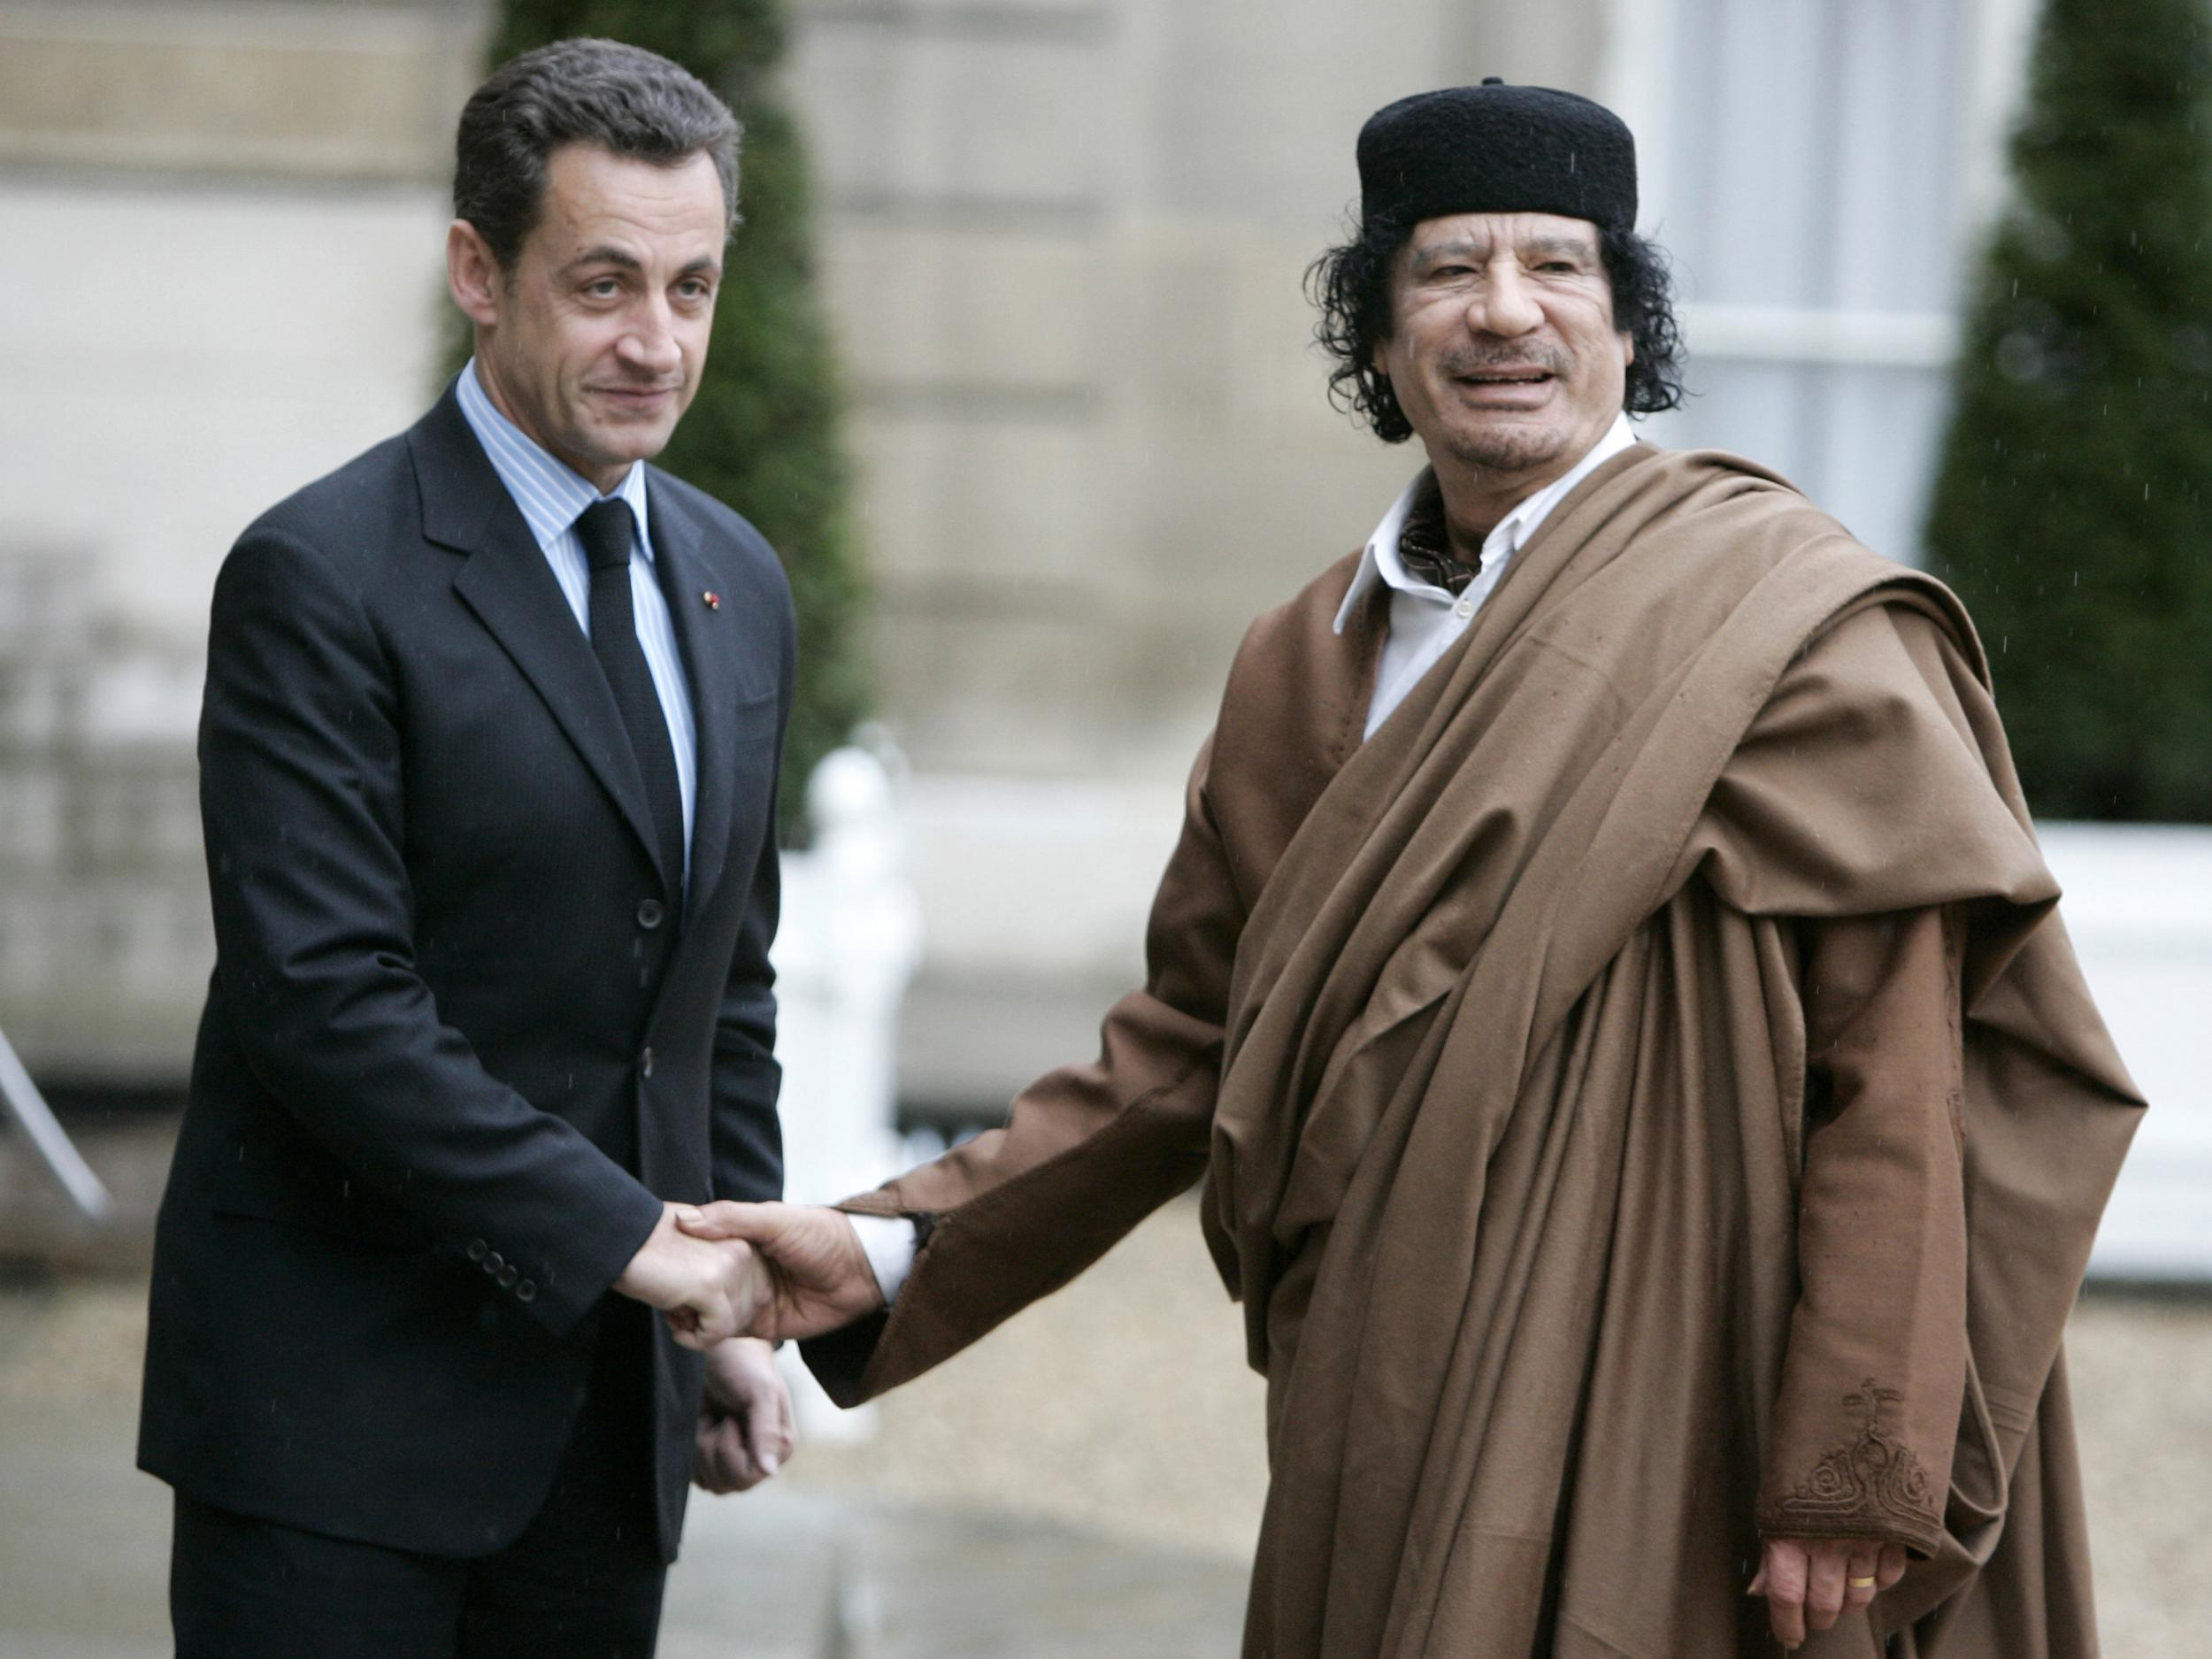 sarkozy - photo #22